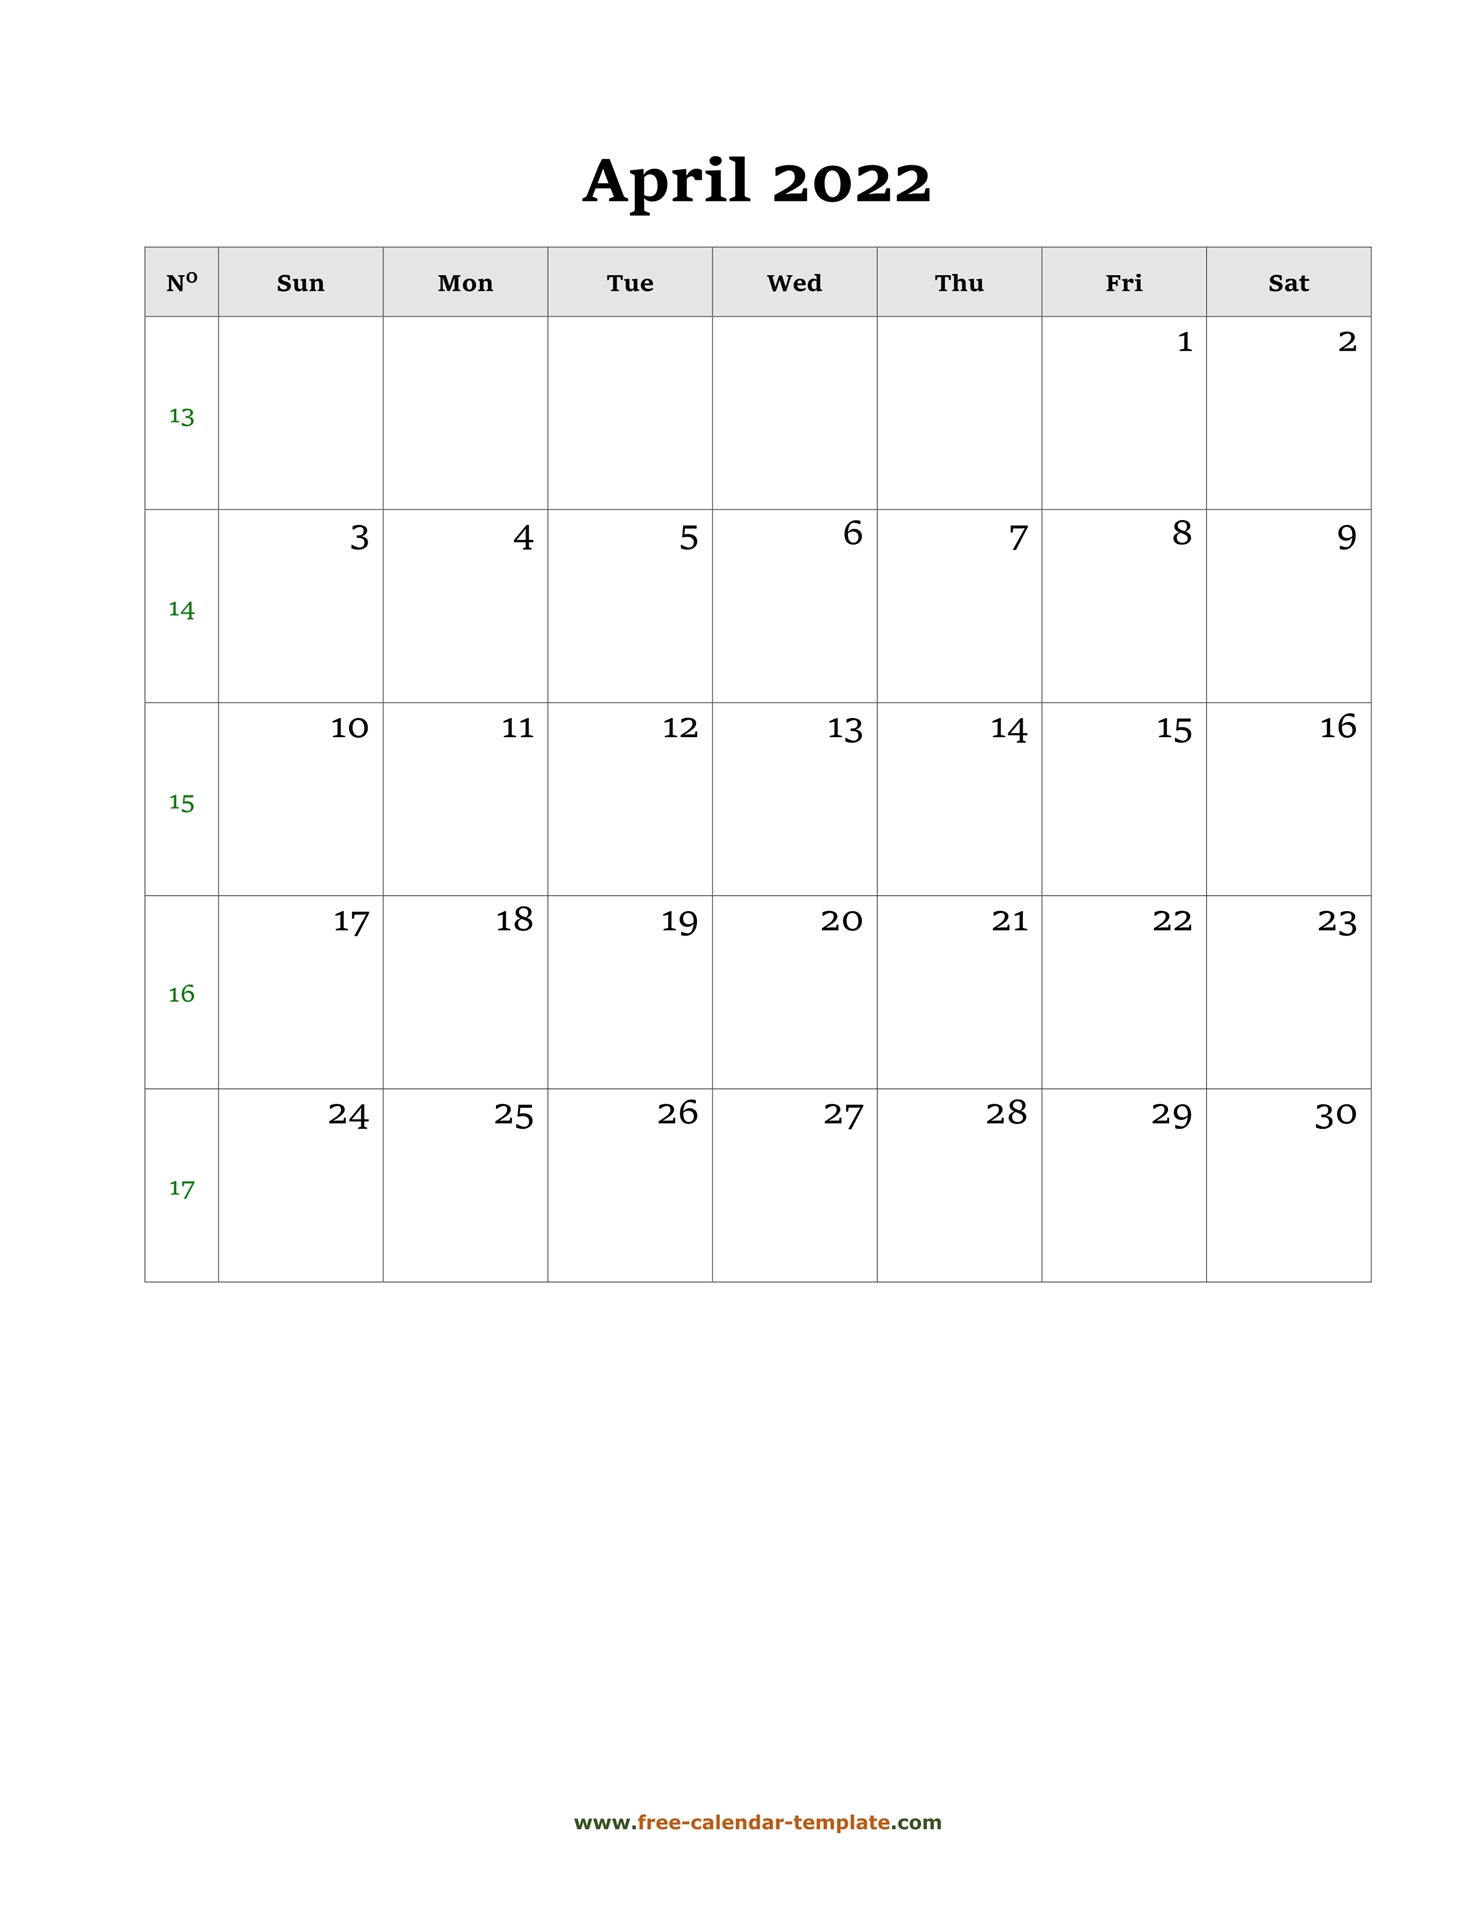 April Calendar 2022 Simple Design With Large Box On Each Intended For March & April 2022 Calendar Free Printable